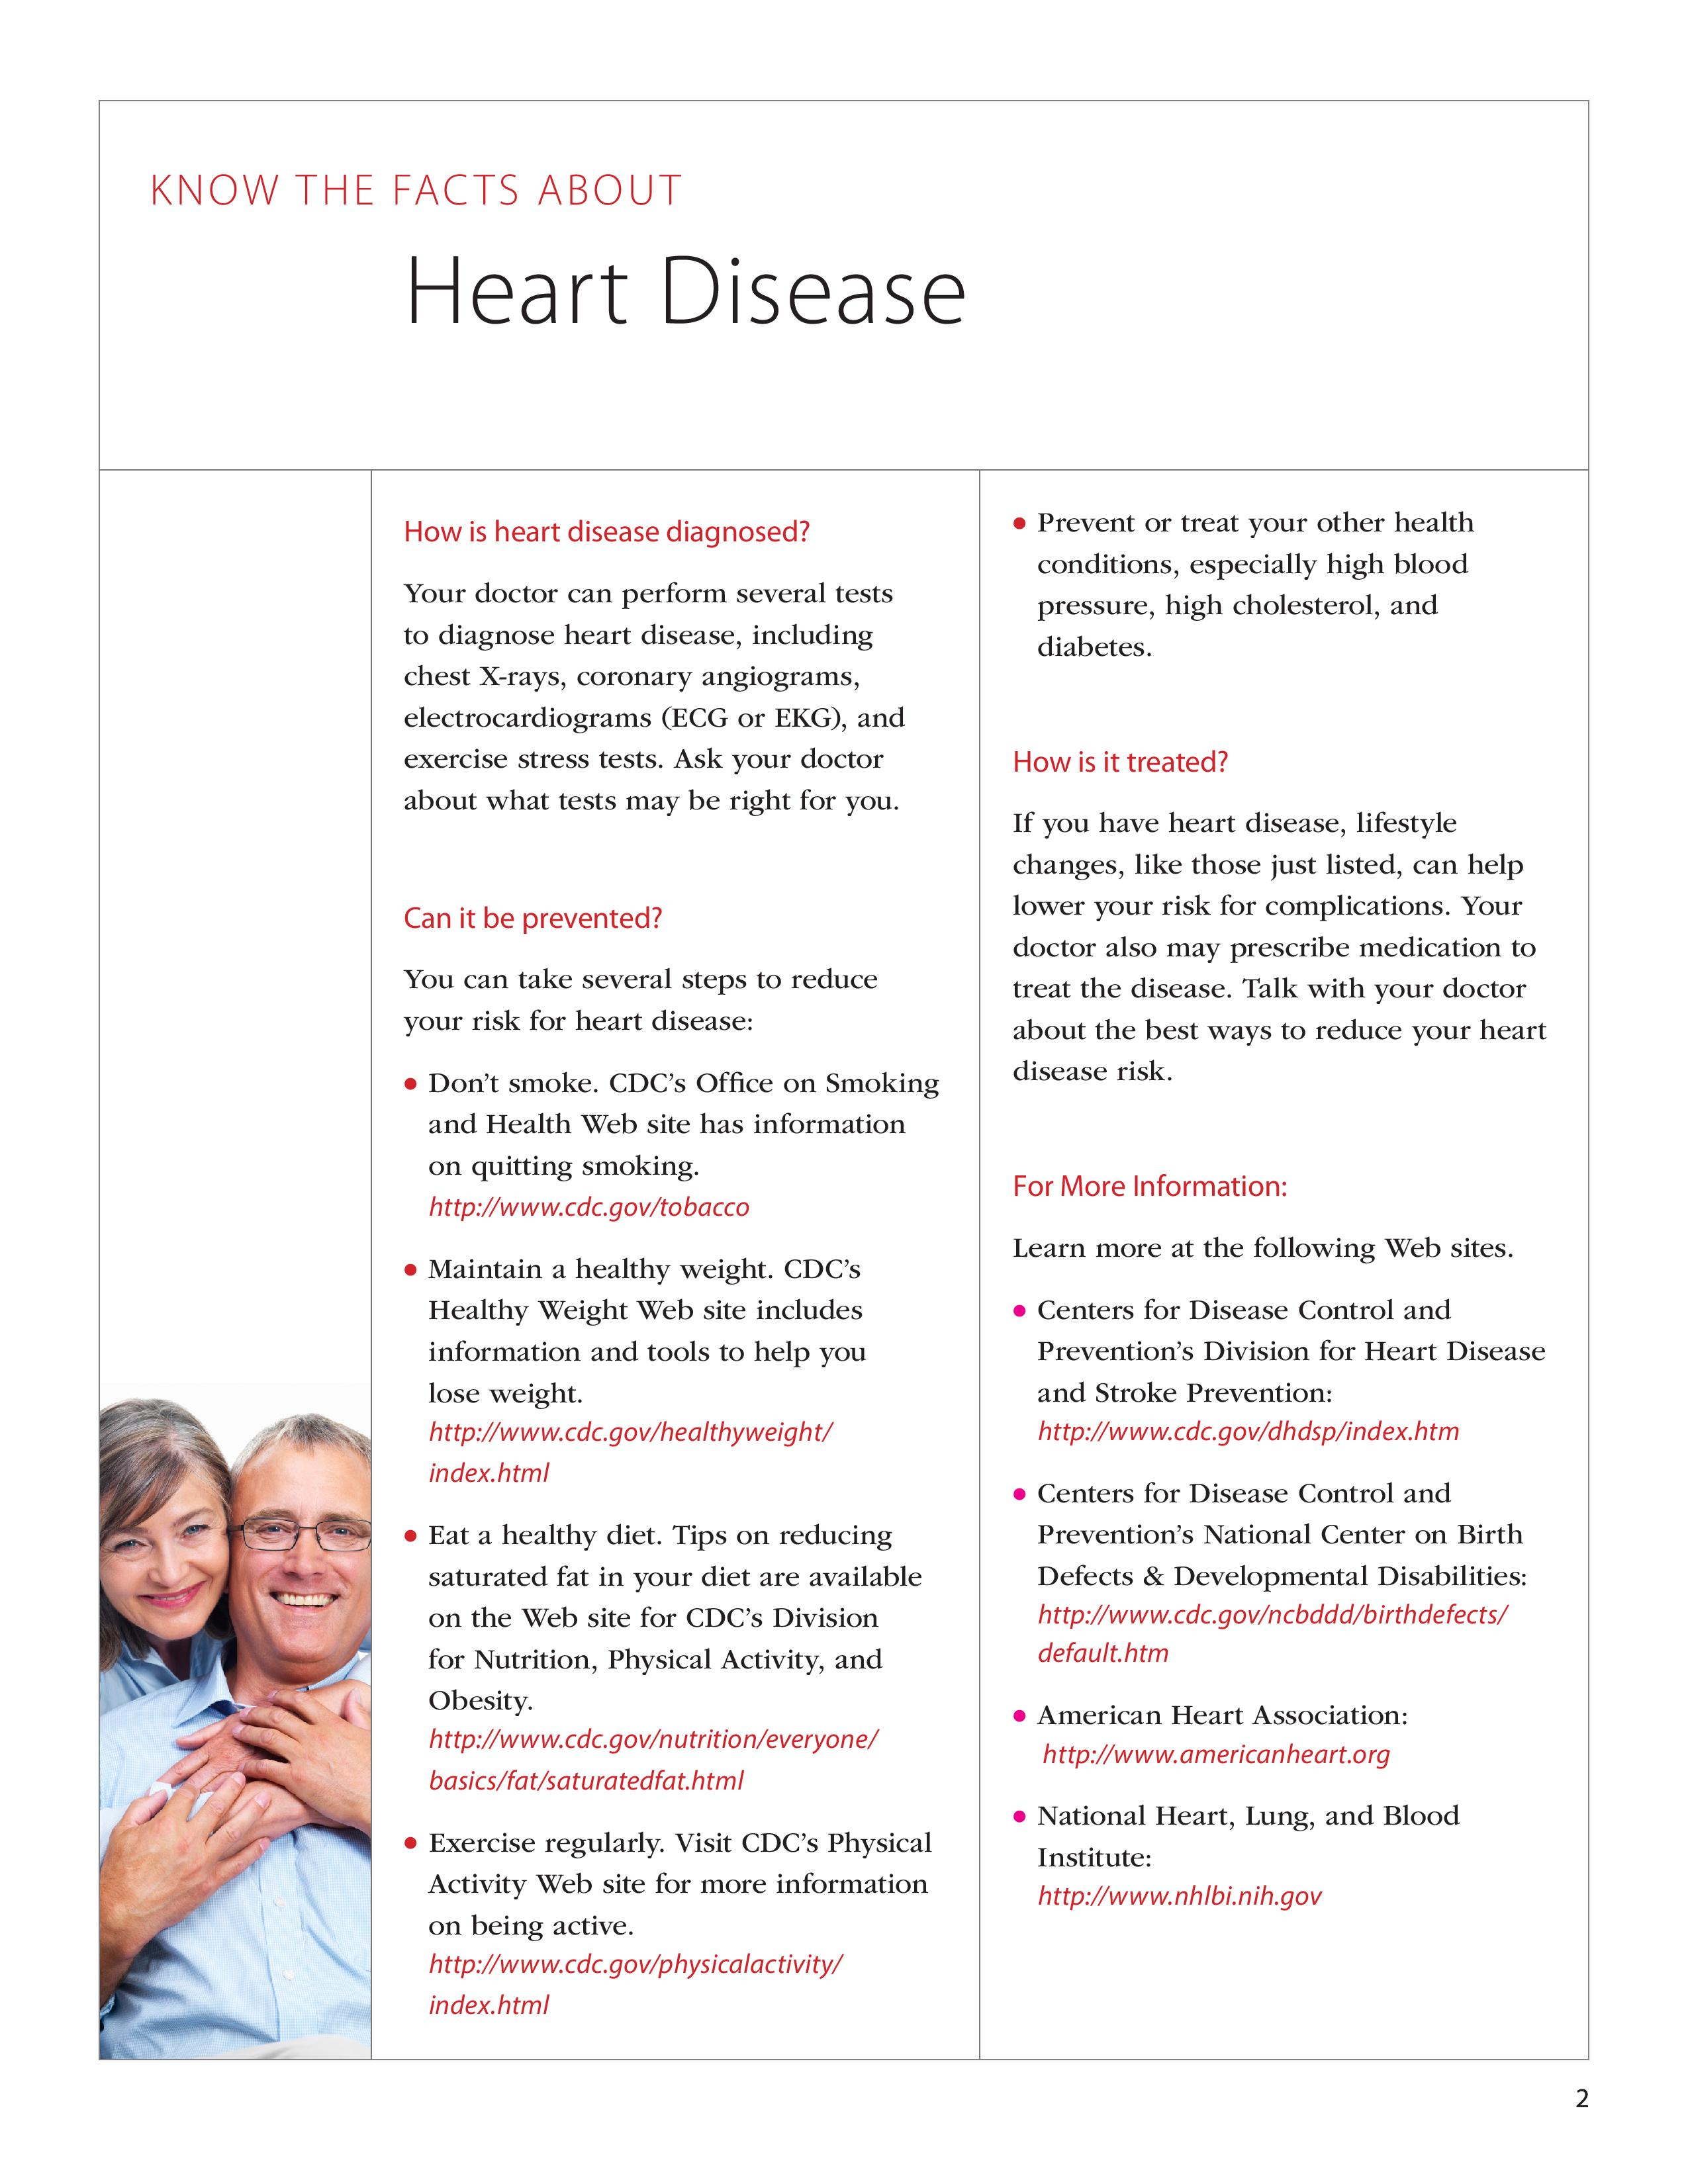 consumered_heartdisease-page-002